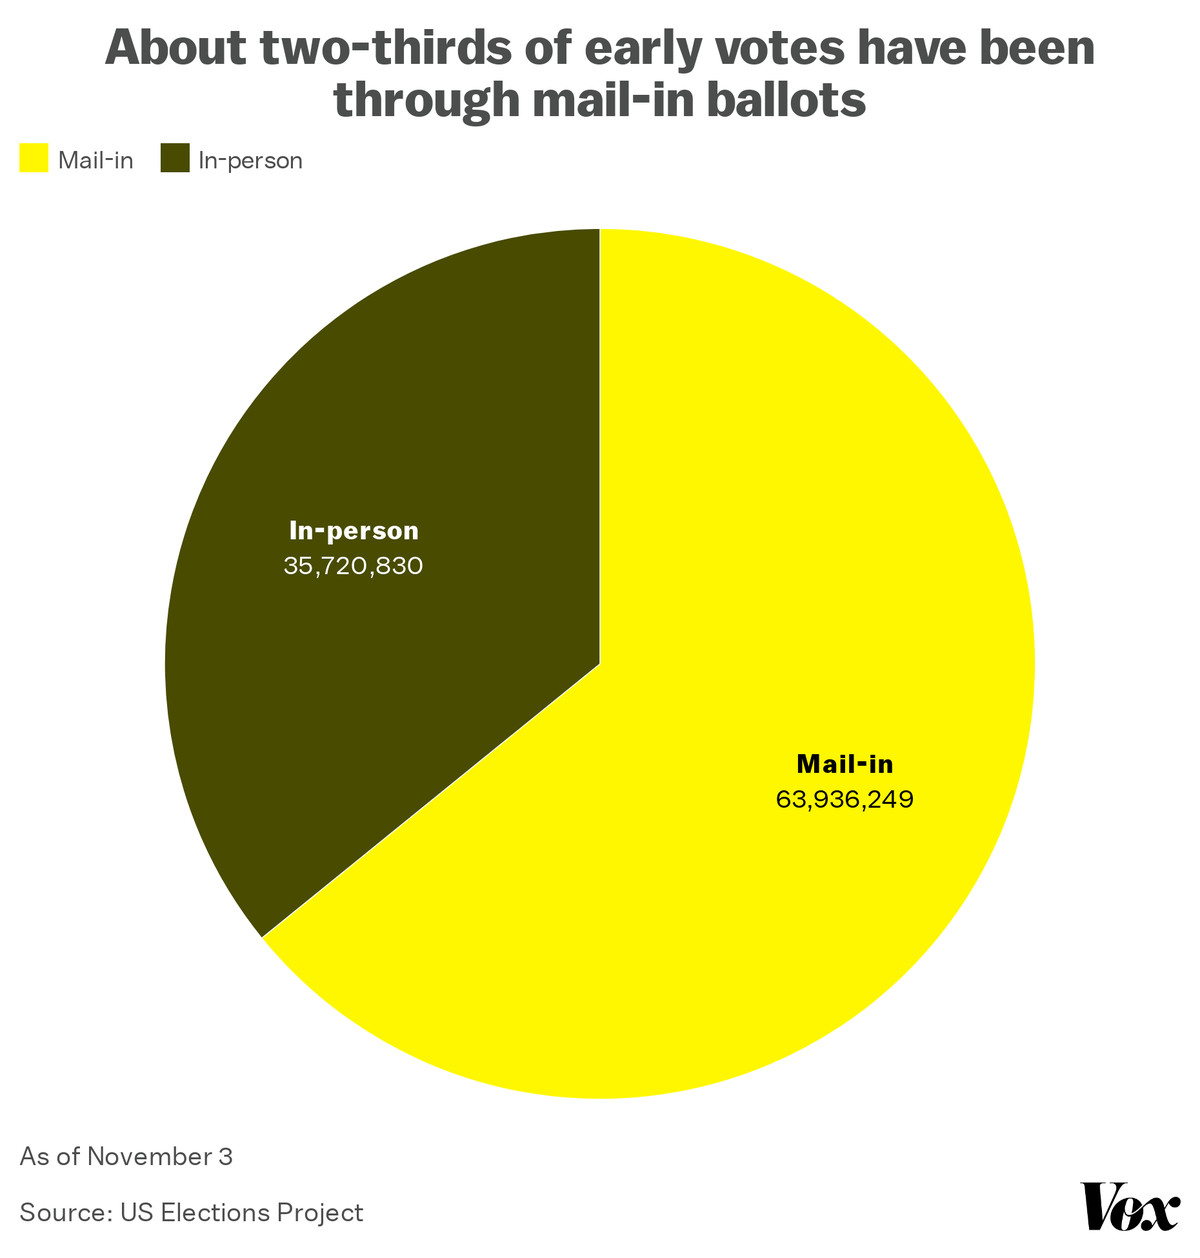 Chart: About two-thirds of early votes have been through mail-in ballots